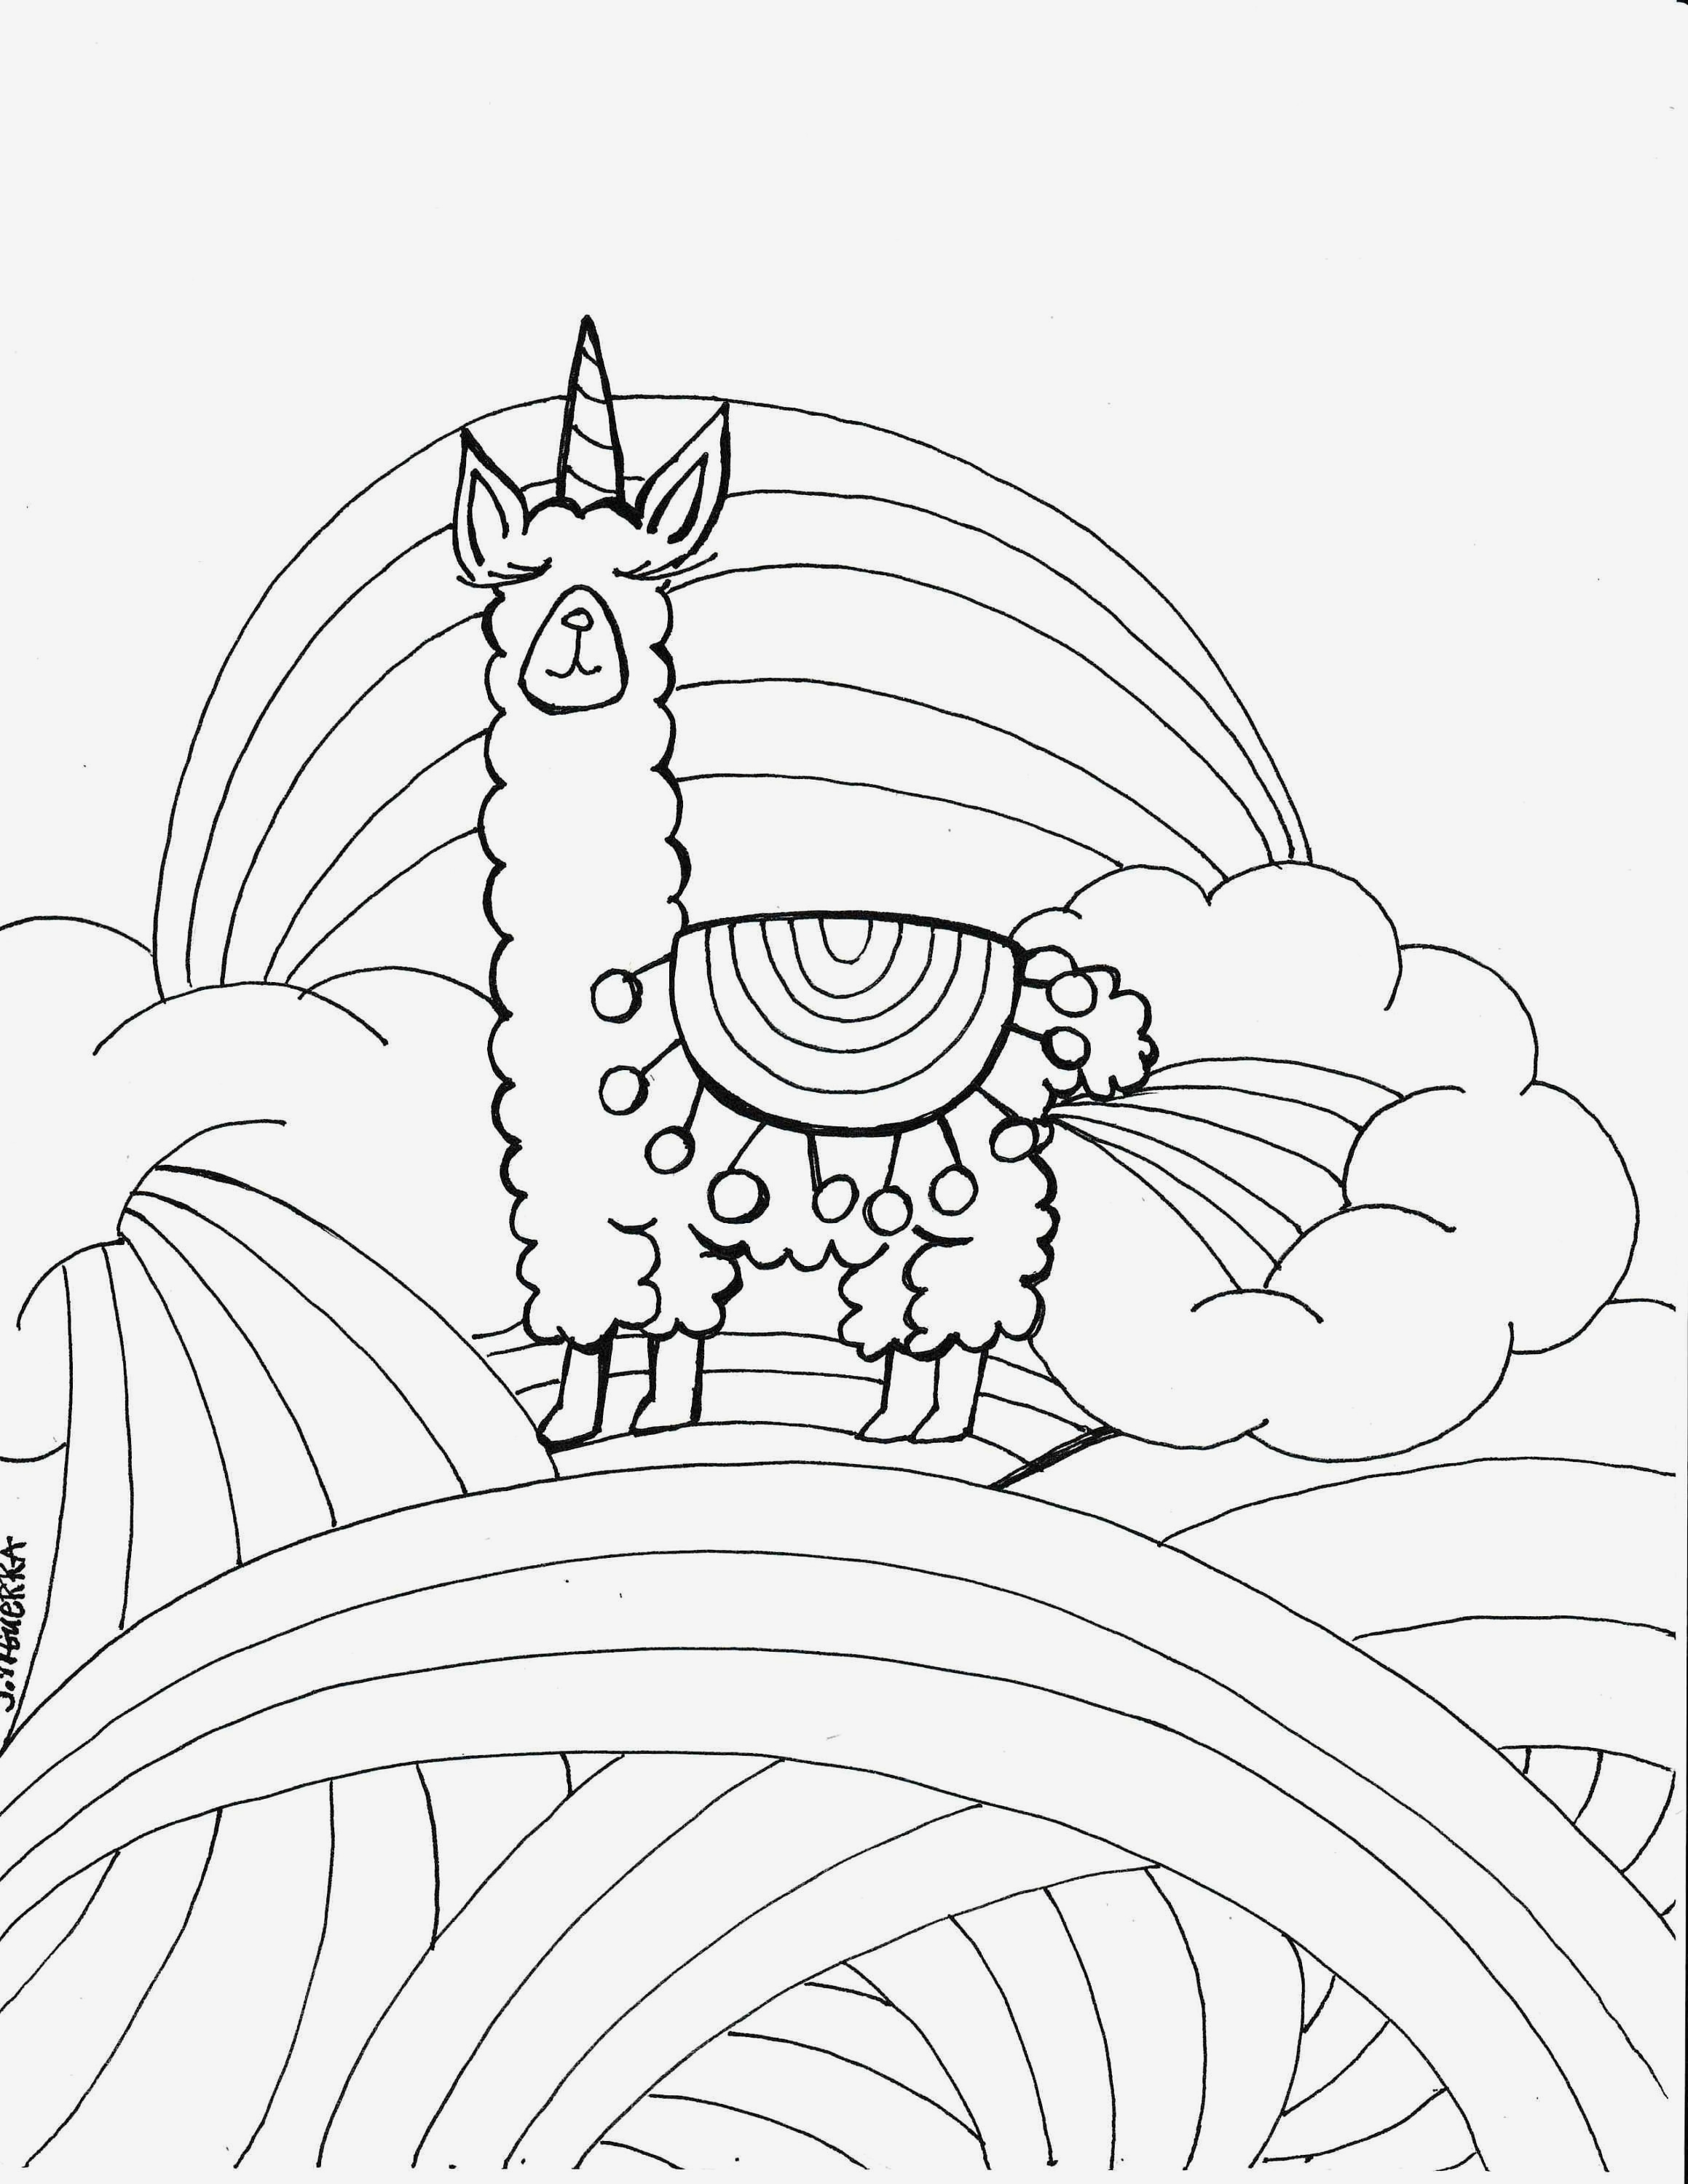 Tattoo Coloring Book Pages  Collection 3o - To print for your project